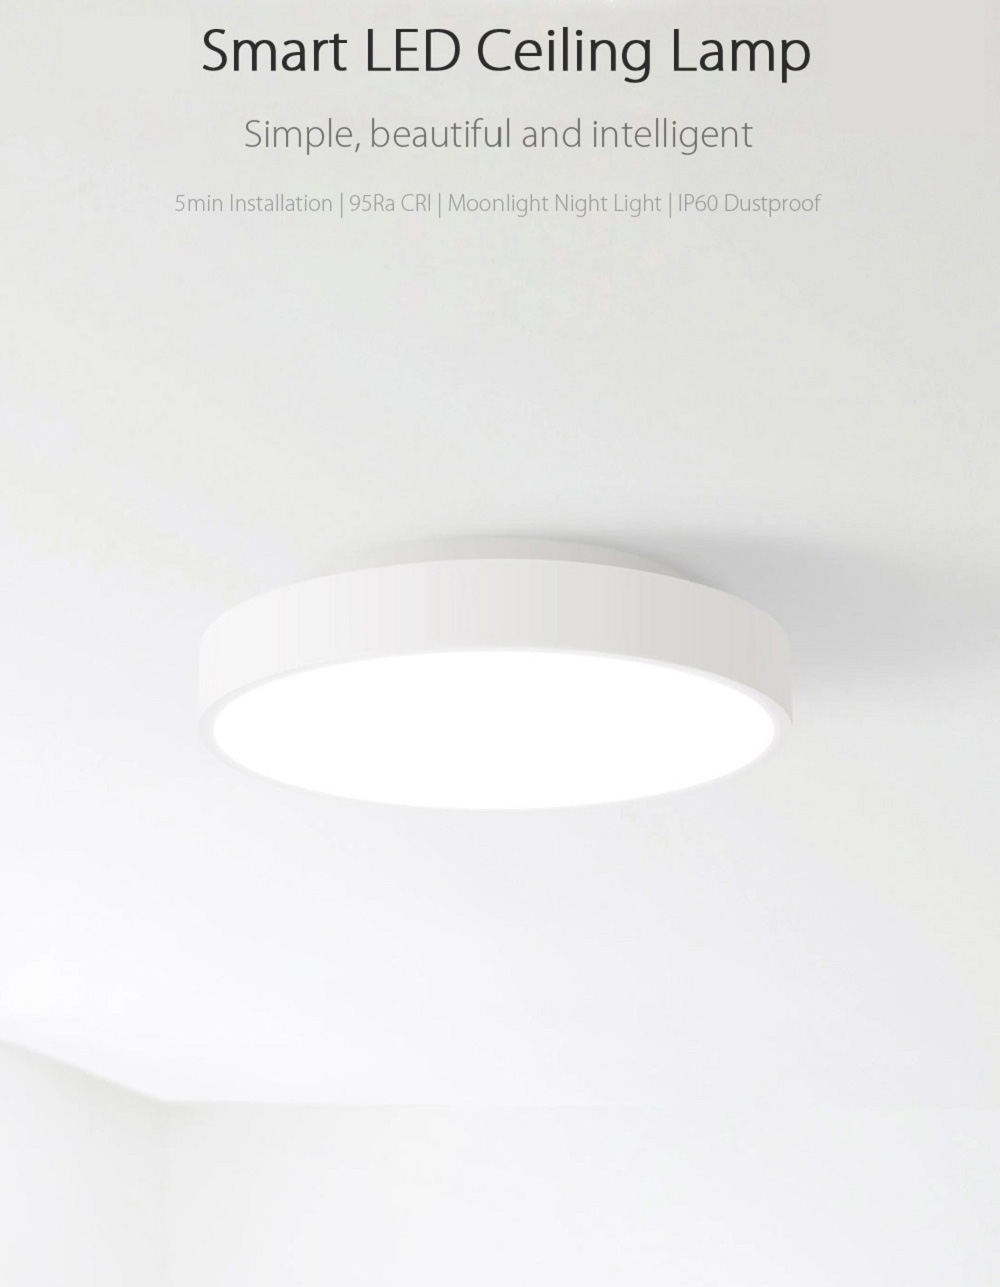 XIAOMI Yeelight Smart LED stropna svjetiljka s daljinskim upravljačem - image XIAOMI-Yeelight-Smart-LED-Ceiling-Light-20170724173826765 on https://smartmall.hr